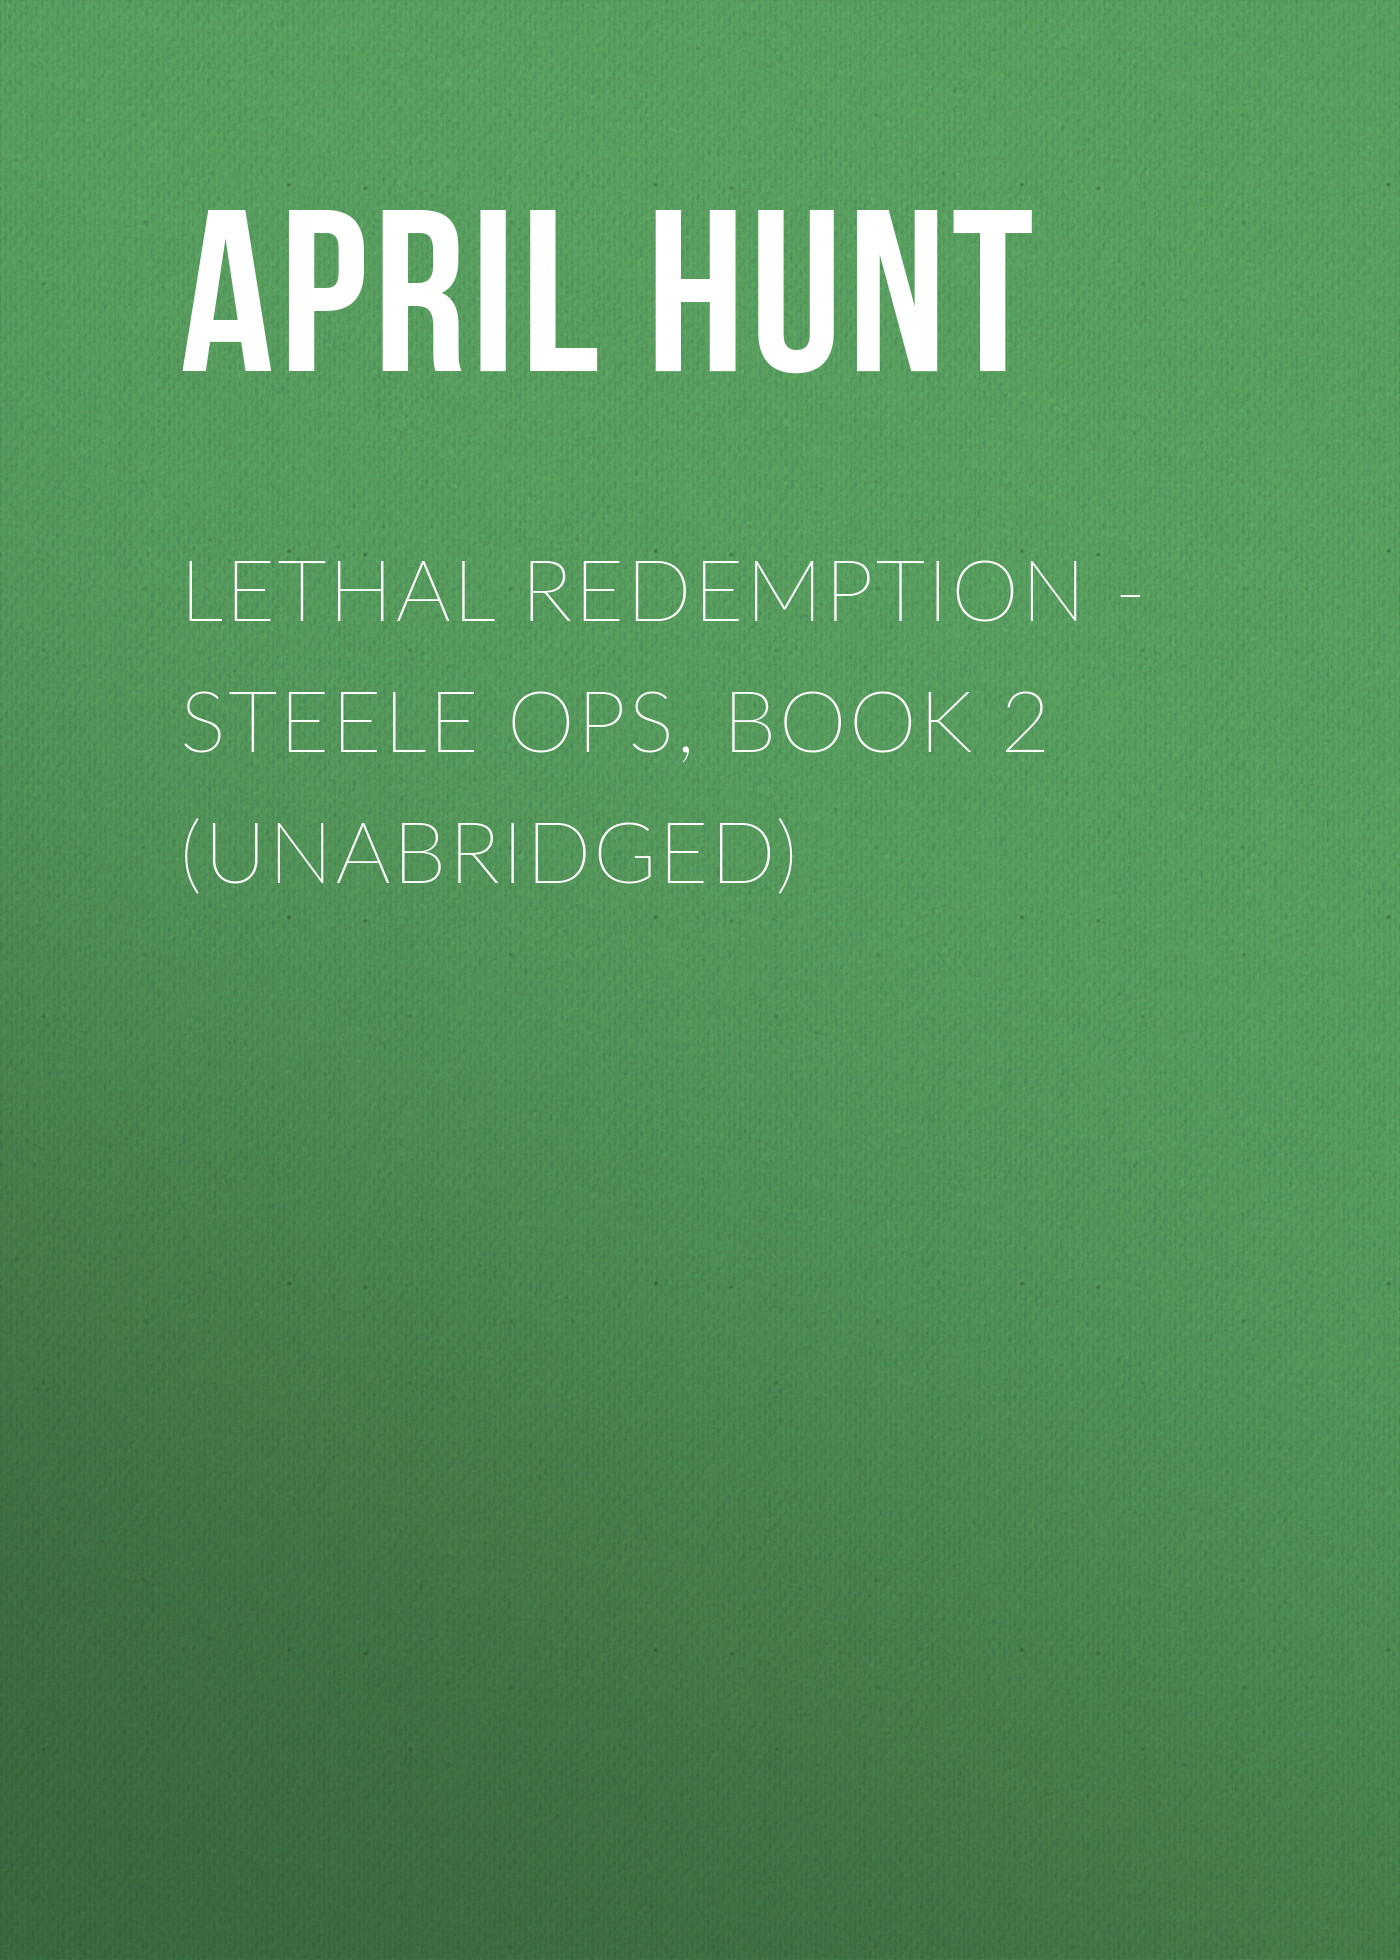 Lethal Redemption - Steele Ops, Book 2 (Unabridged) фото